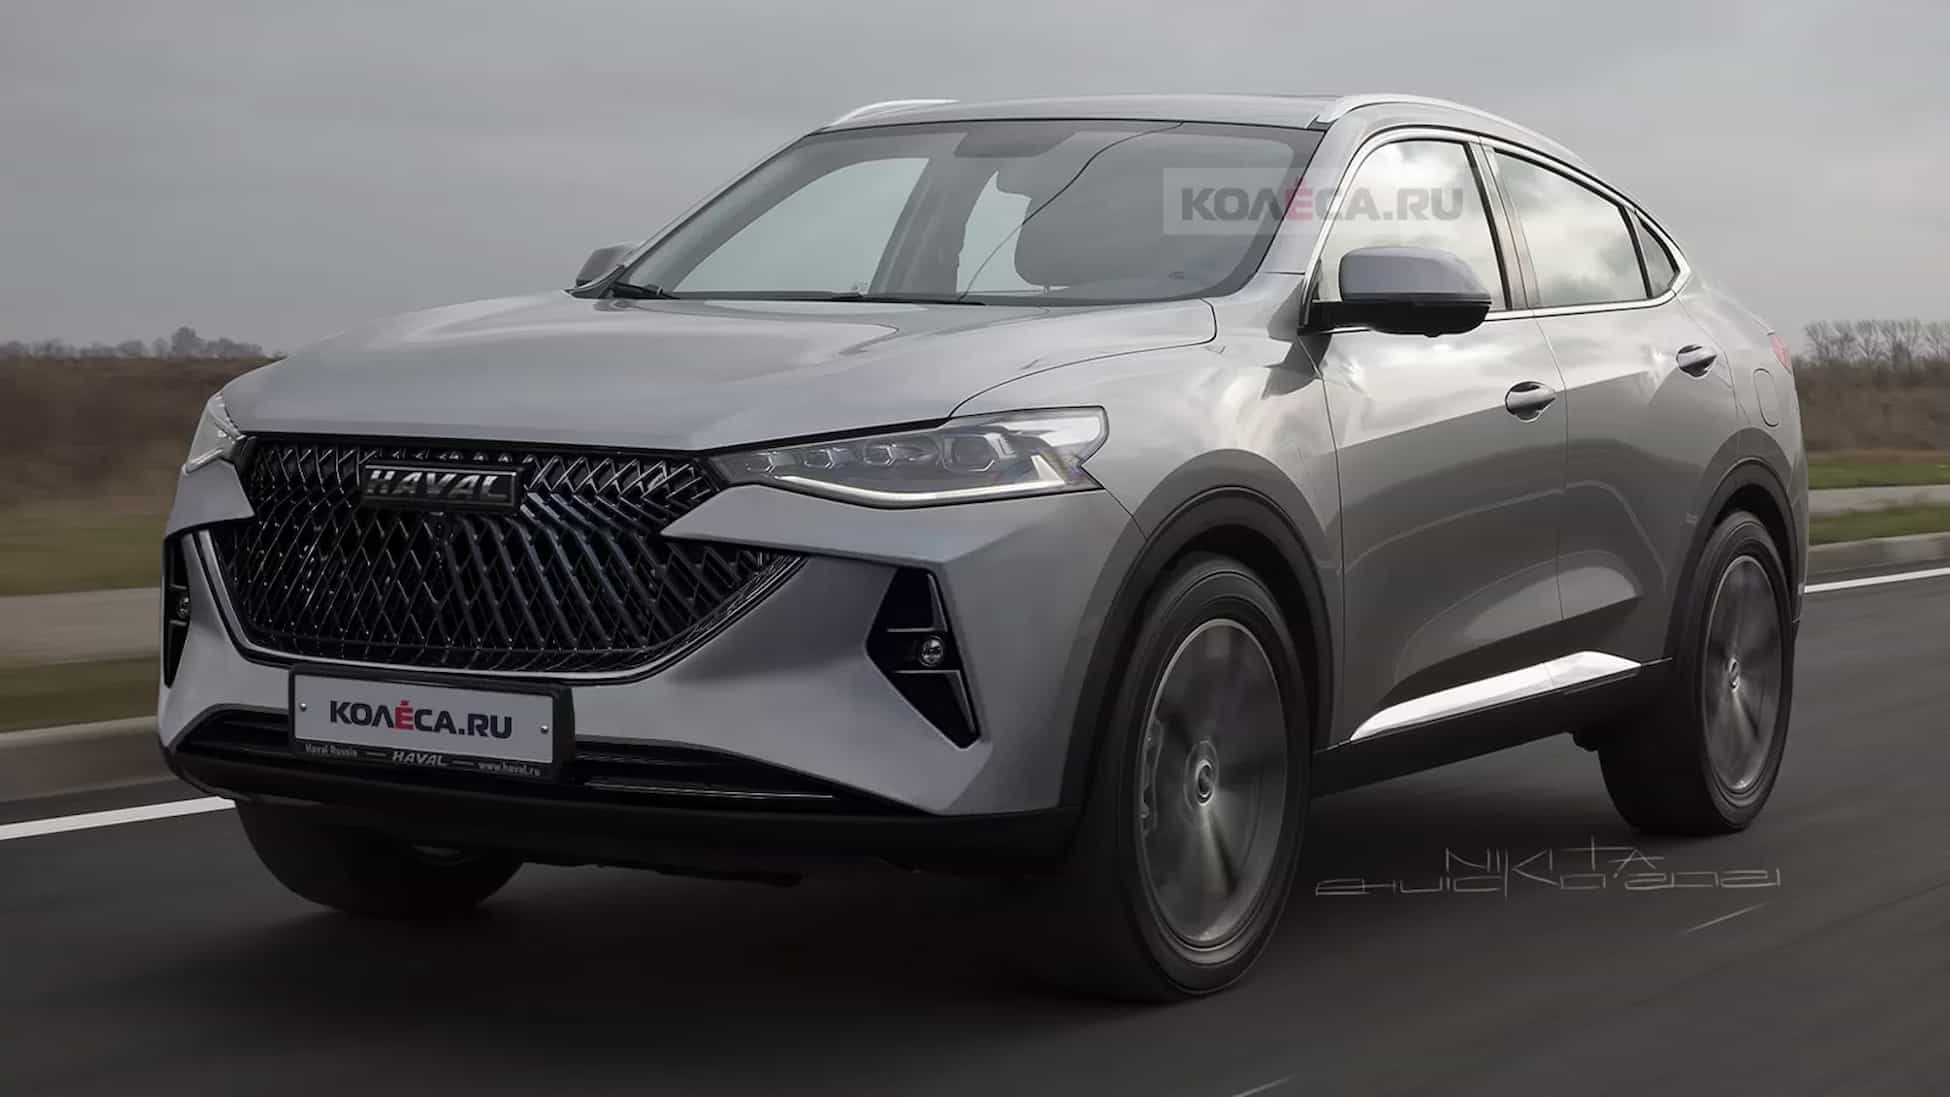 haval f7x rest front2.jpg